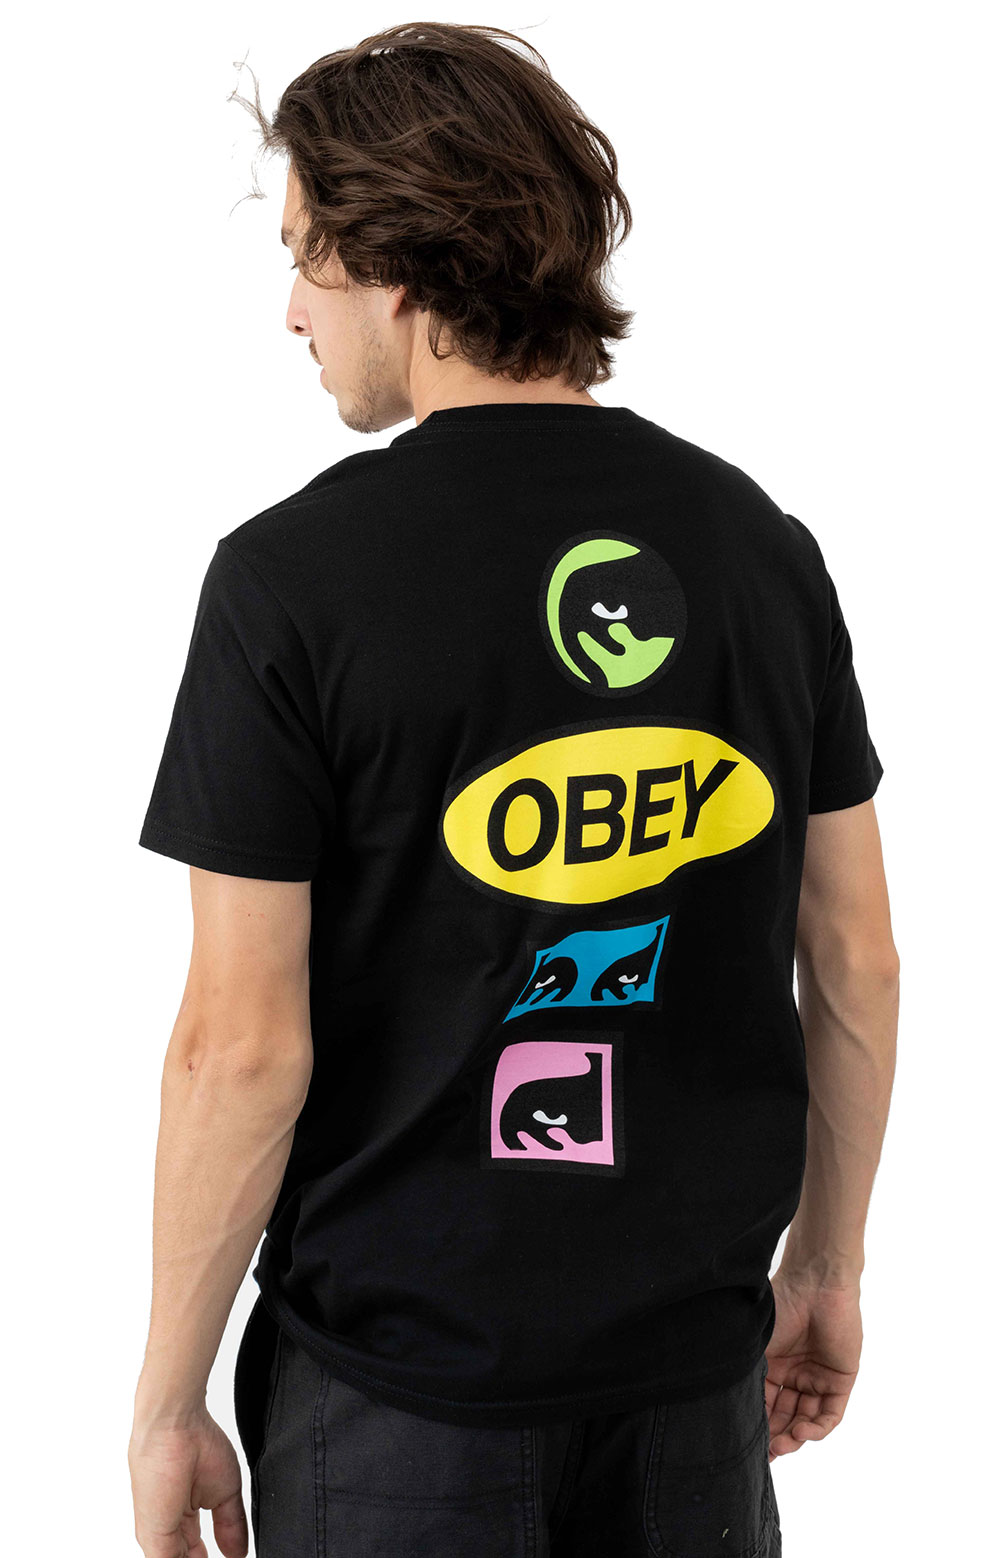 Obey Stacked T-Shirt - Black